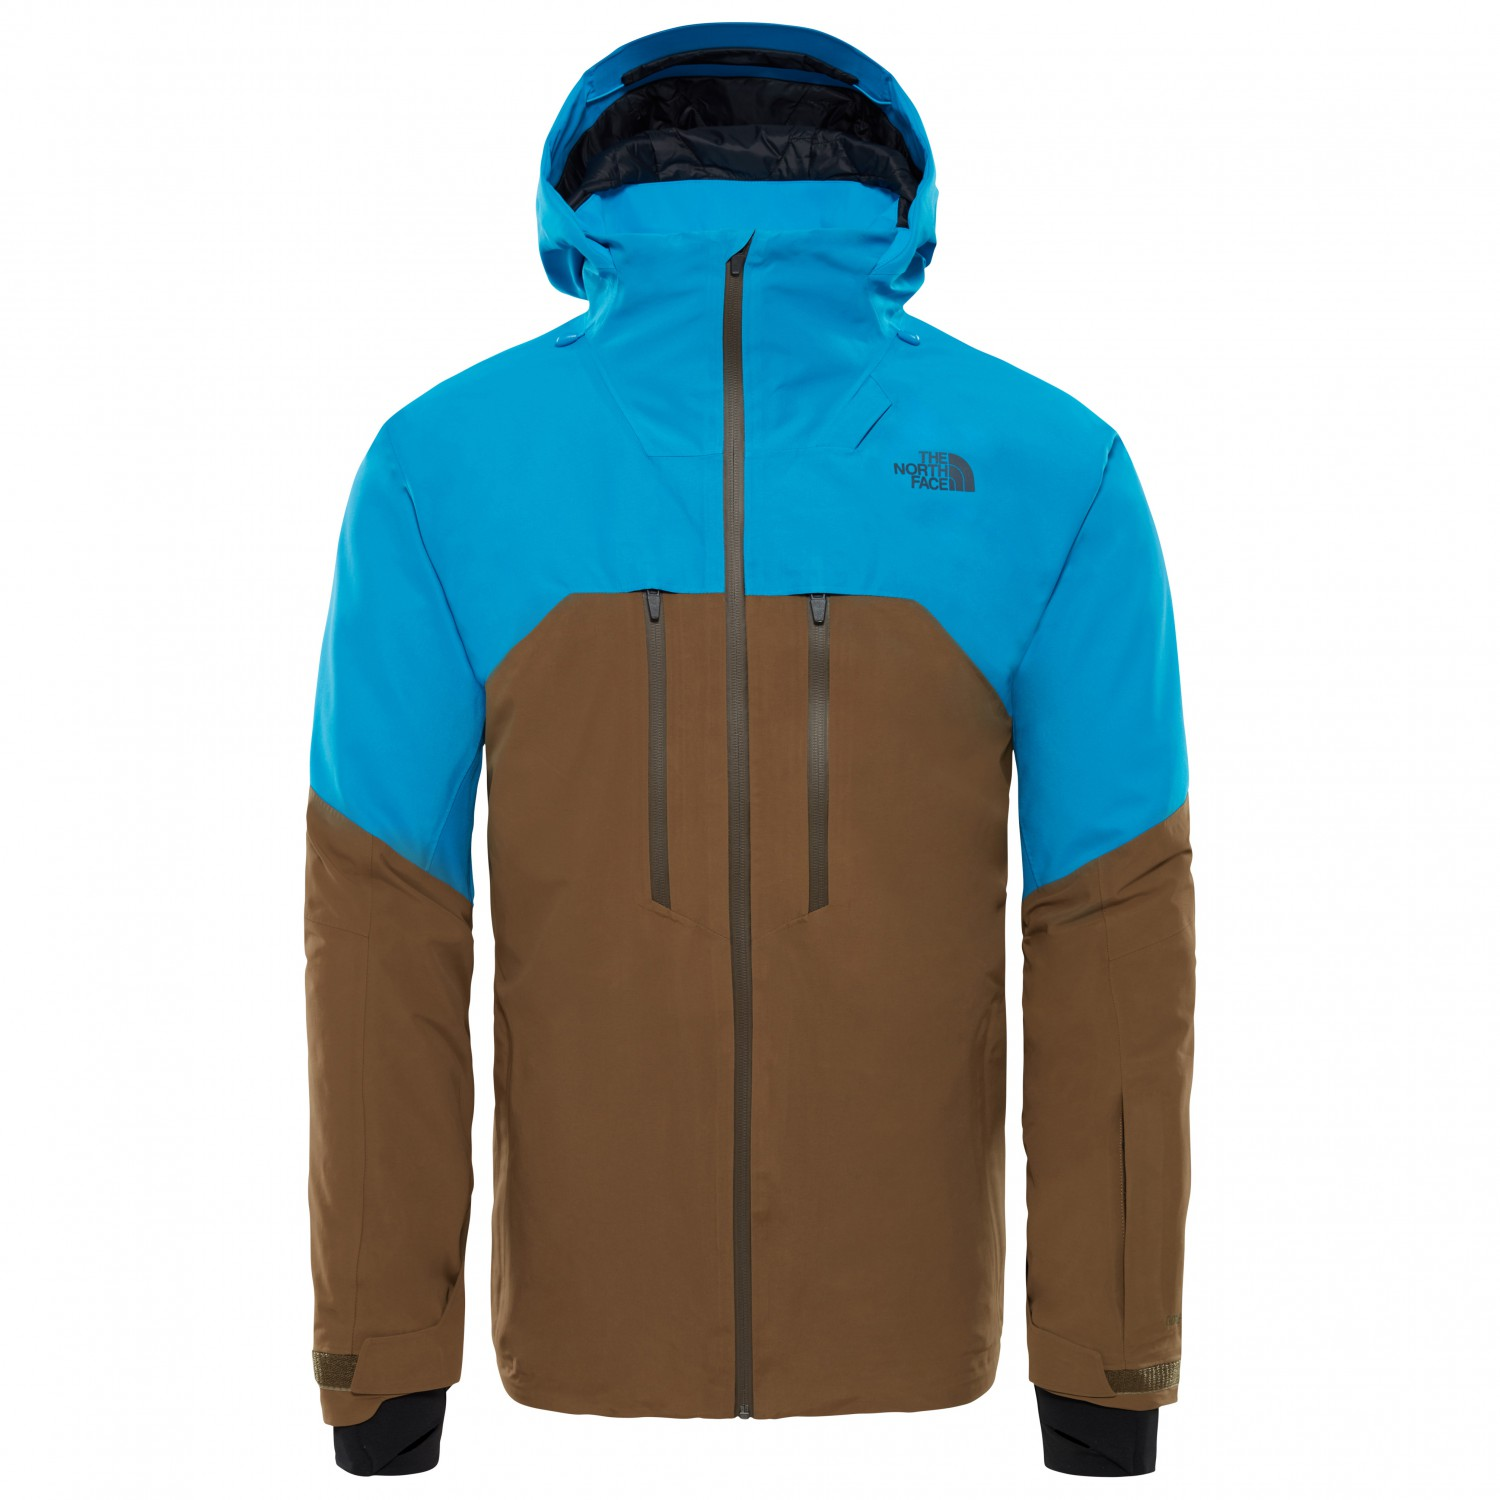 8256145040a3 ... new style the north face powder guide jacket ski jacket 1b2b4 424d9